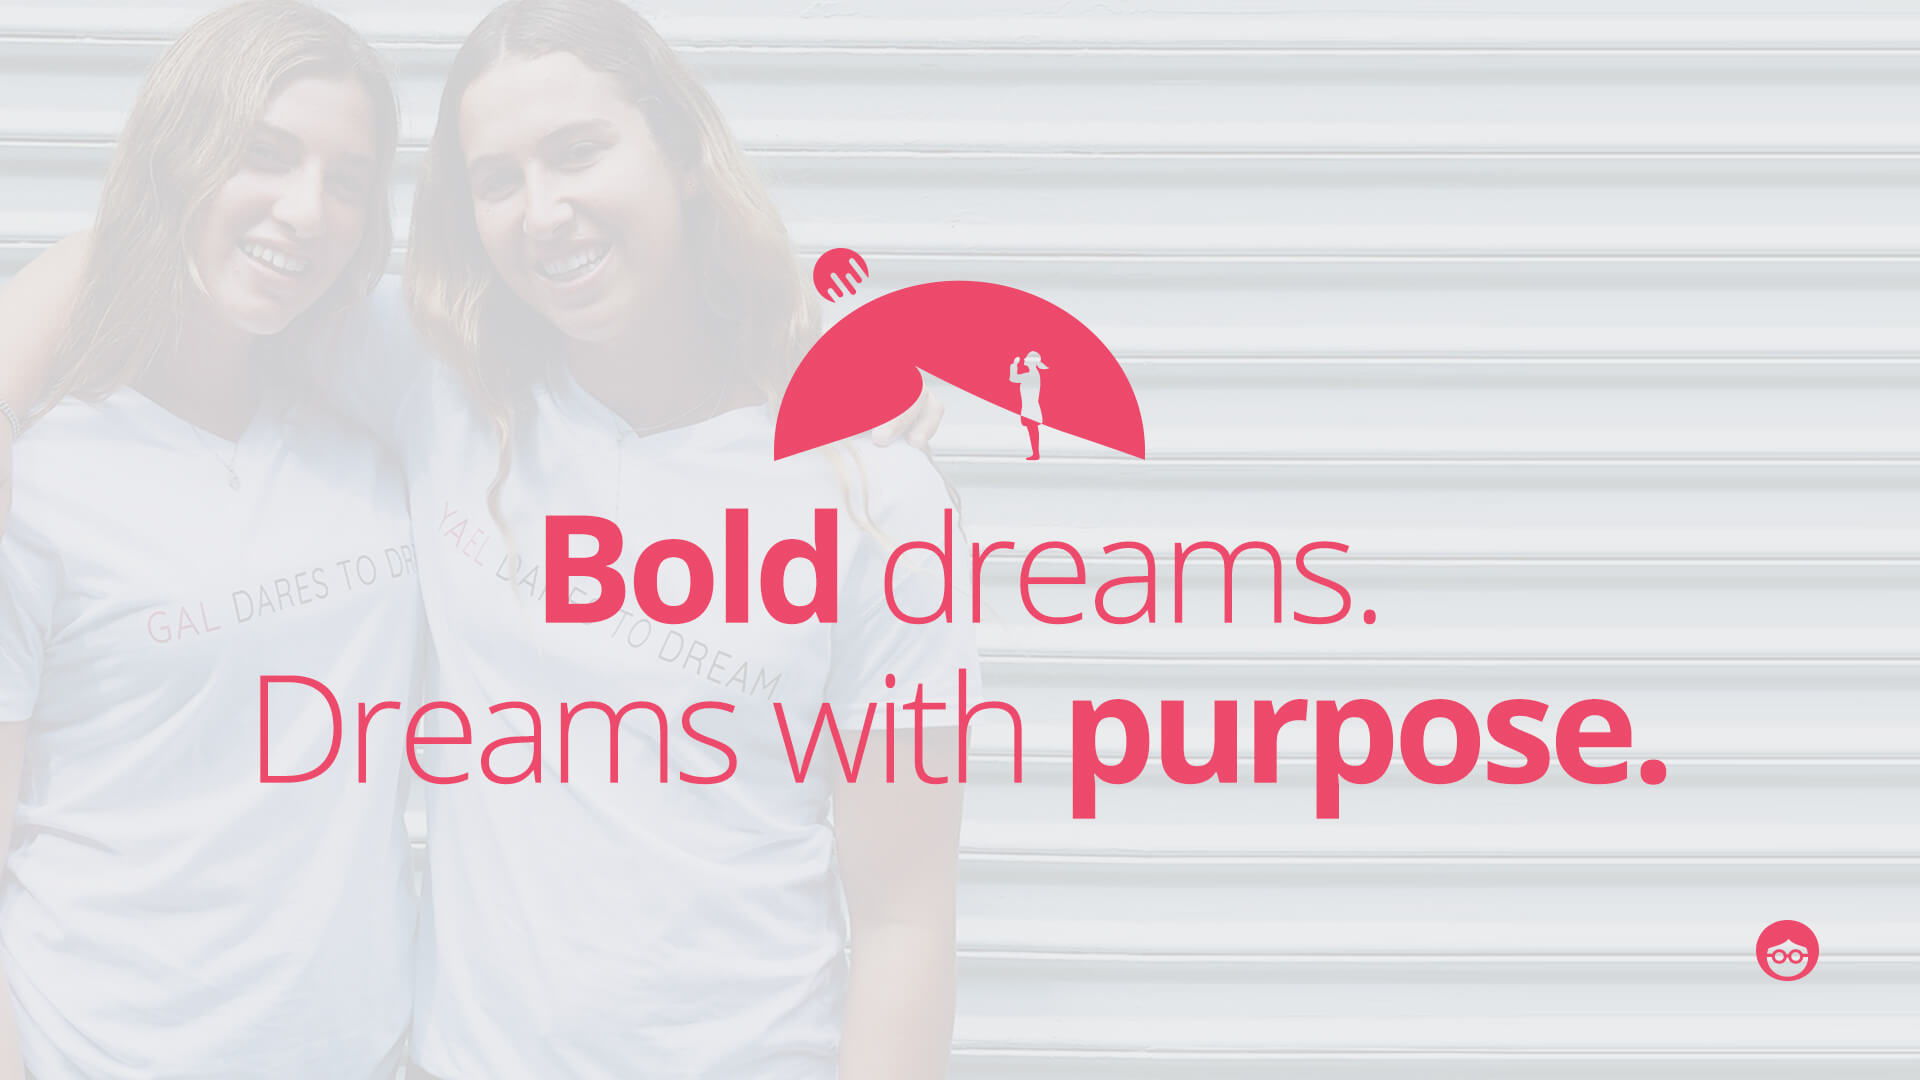 Outbrain Launches 'She Dares to Dream' to Support Gender Equality